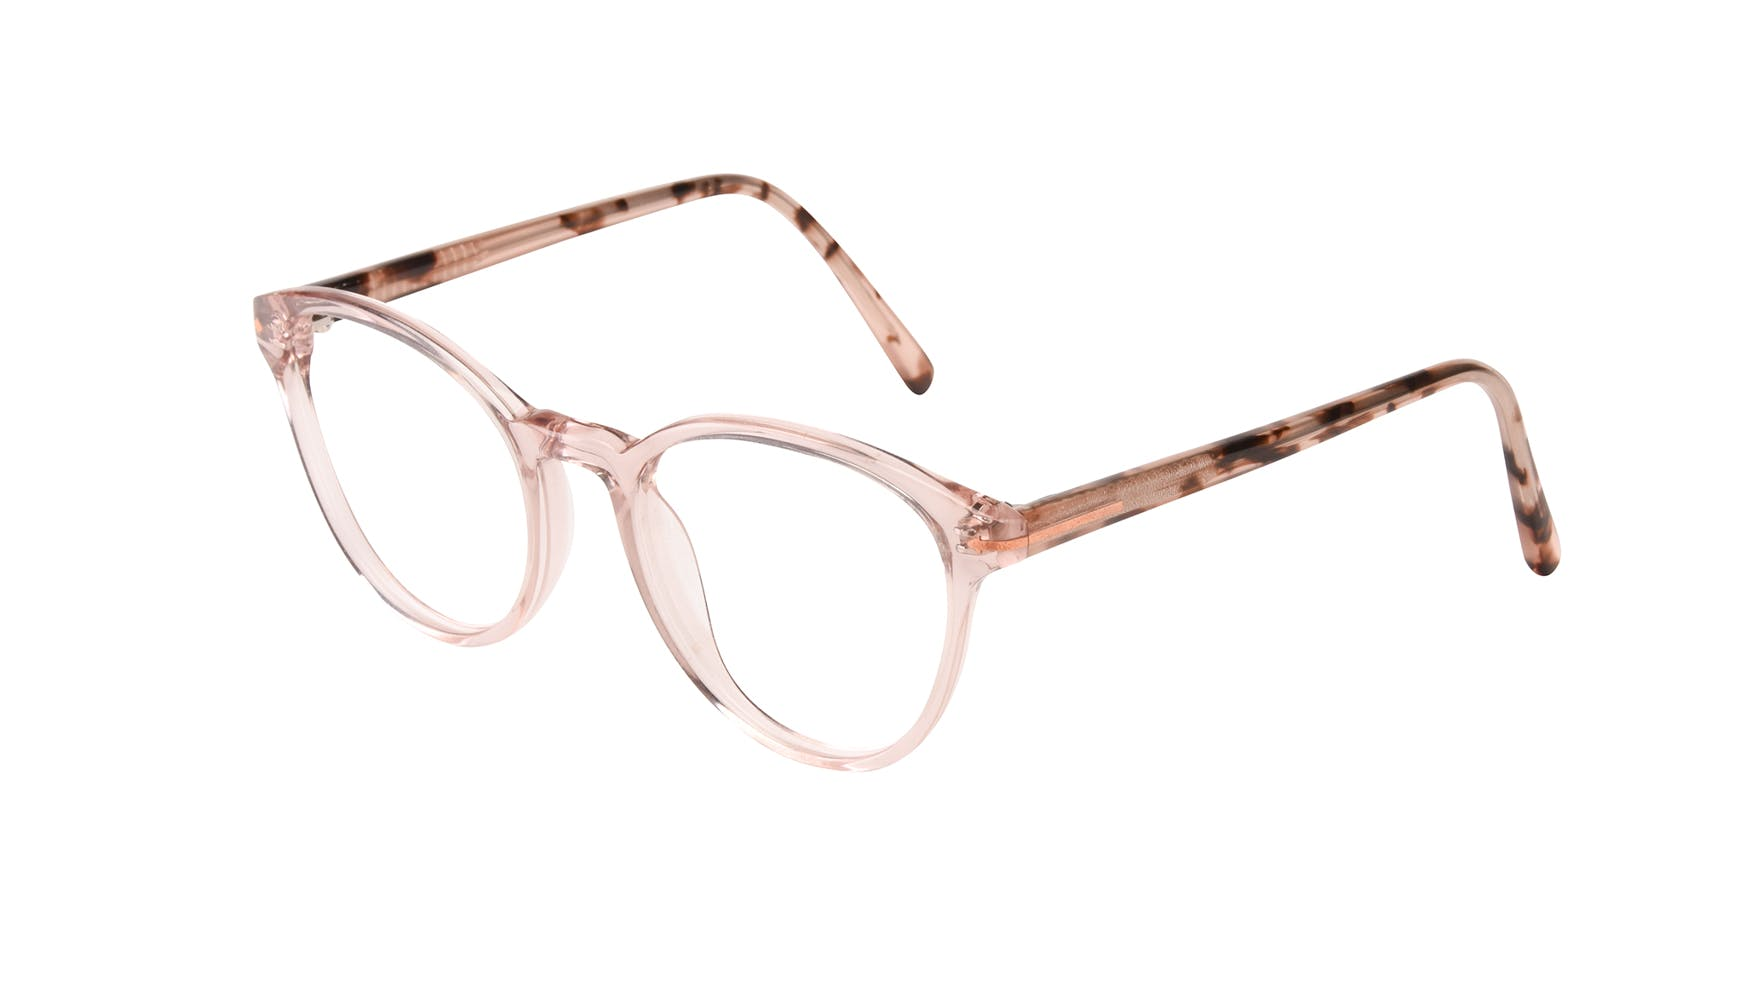 Affordable Fashion Glasses Round Eyeglasses Women London Blush Tilt